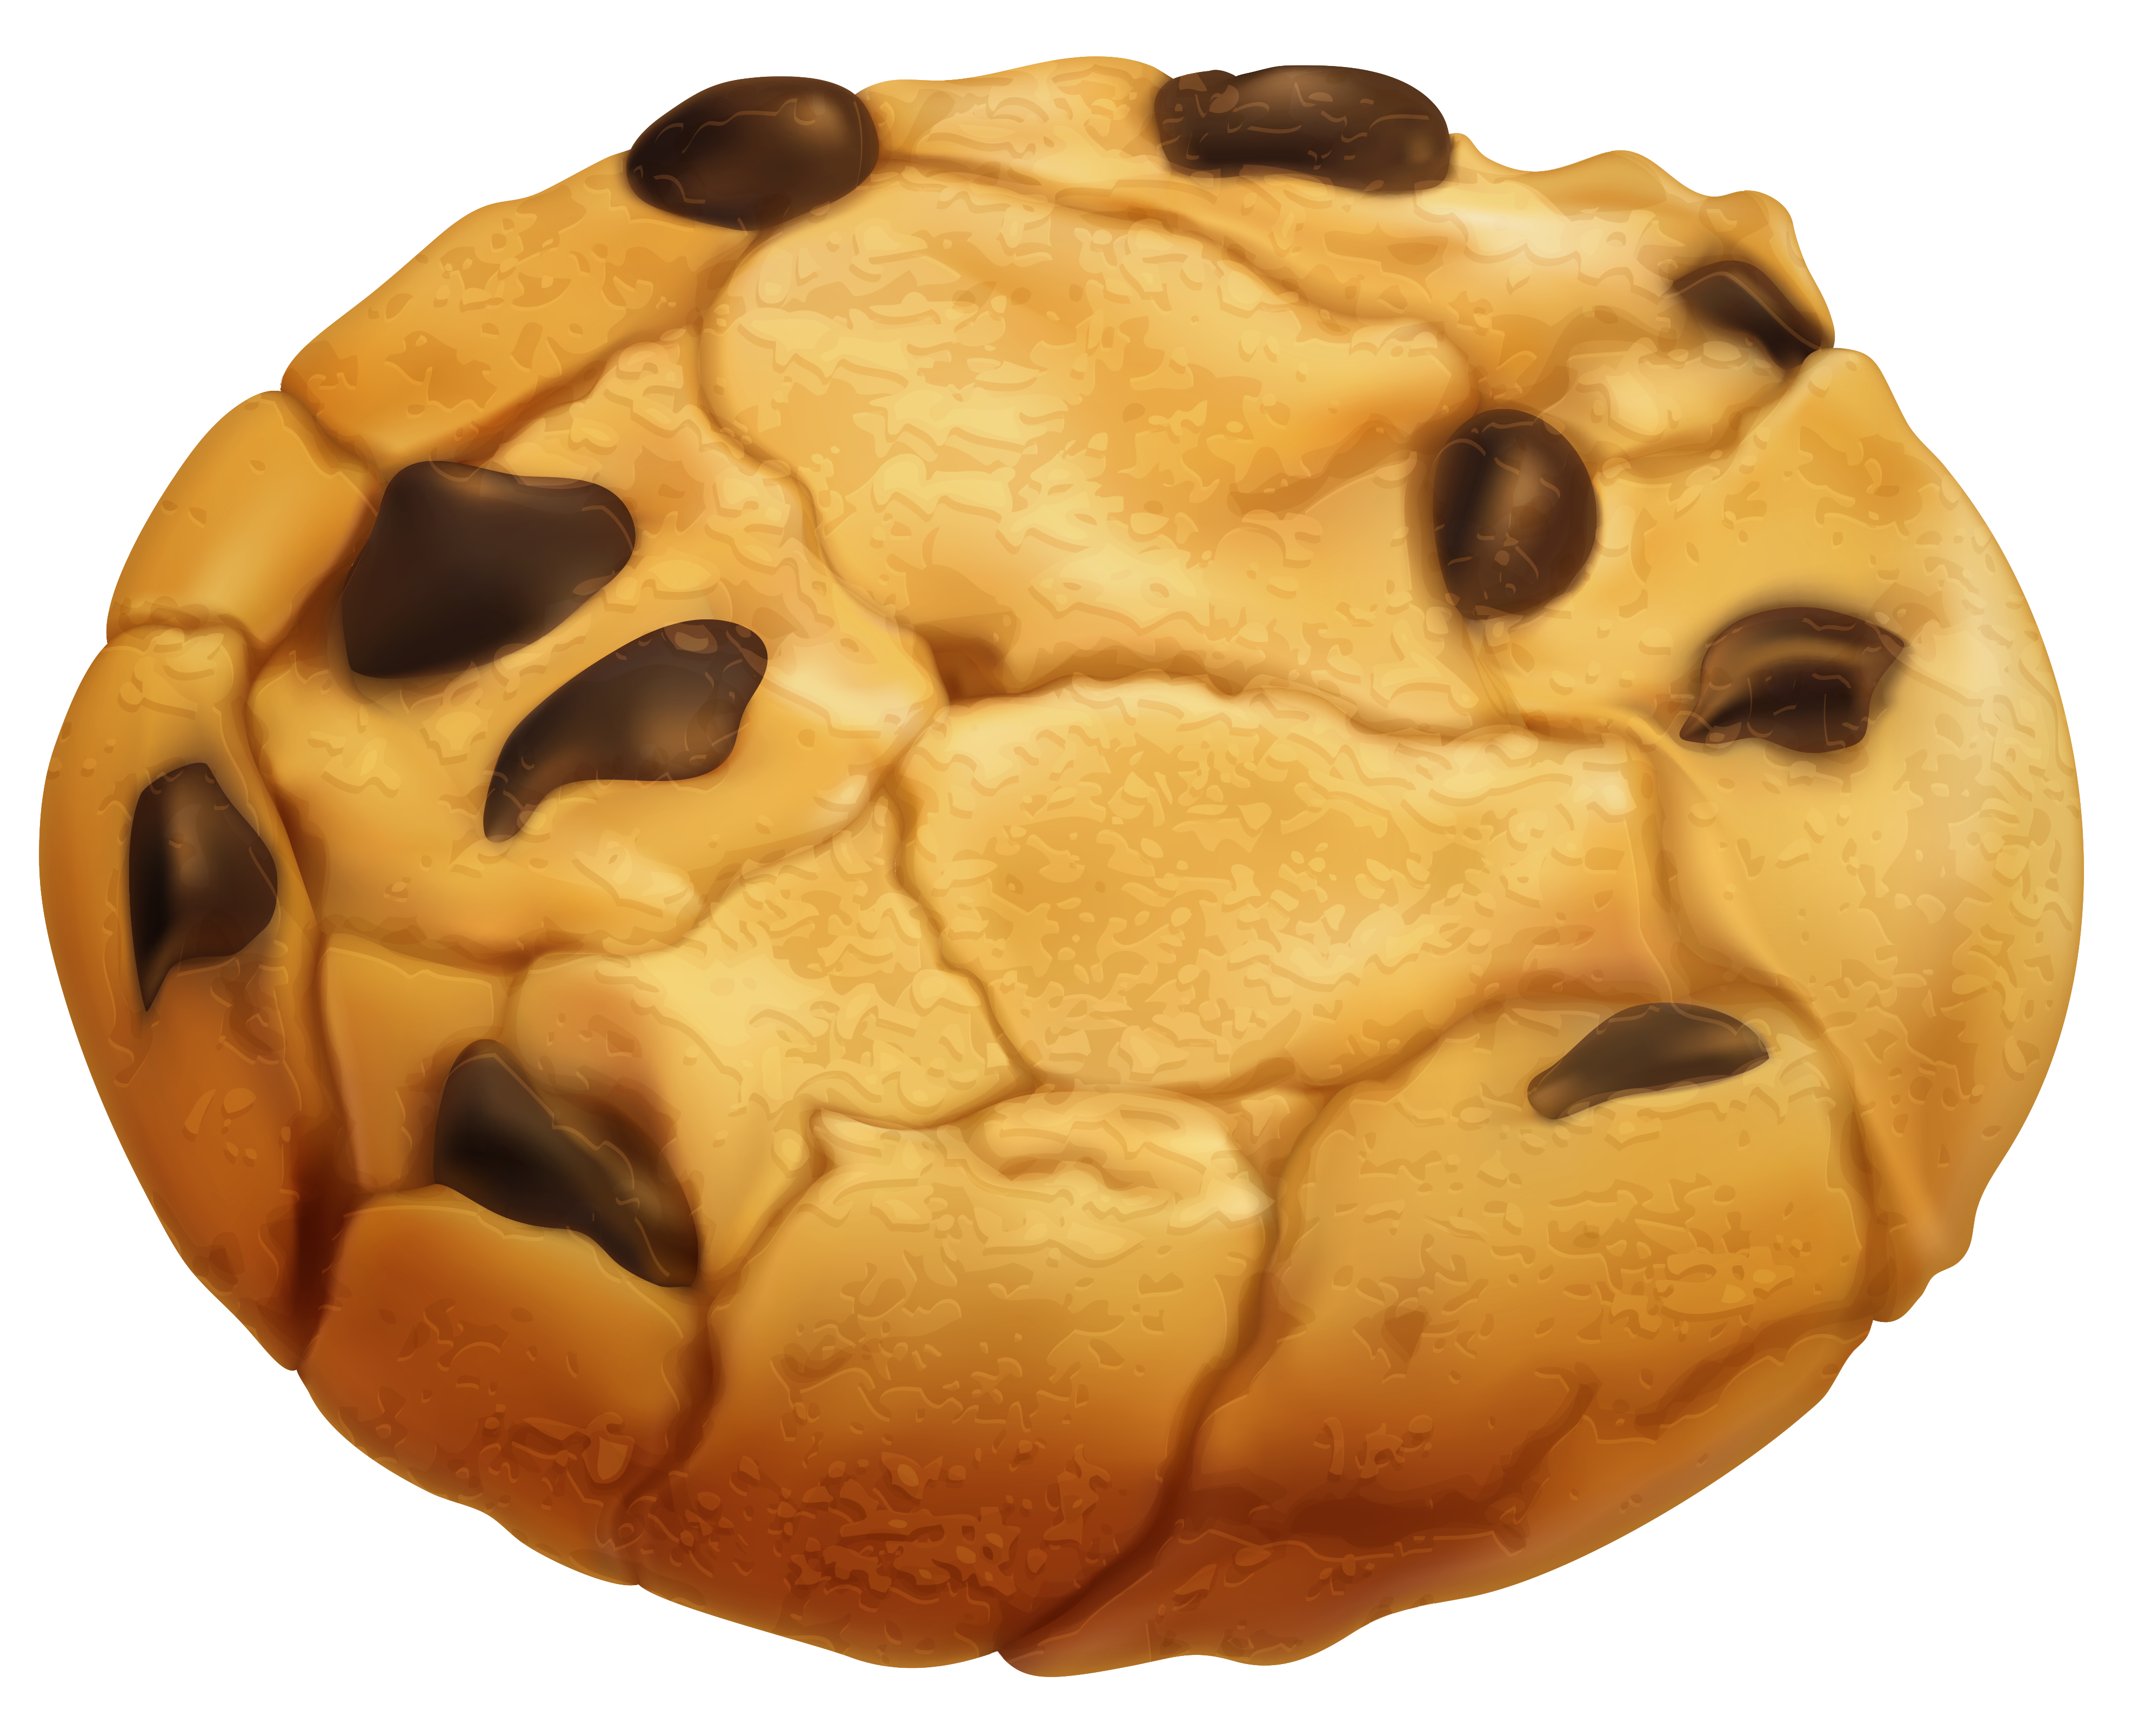 png freeuse stock Brownie clipart chcolate. Cookie with chocolate png.